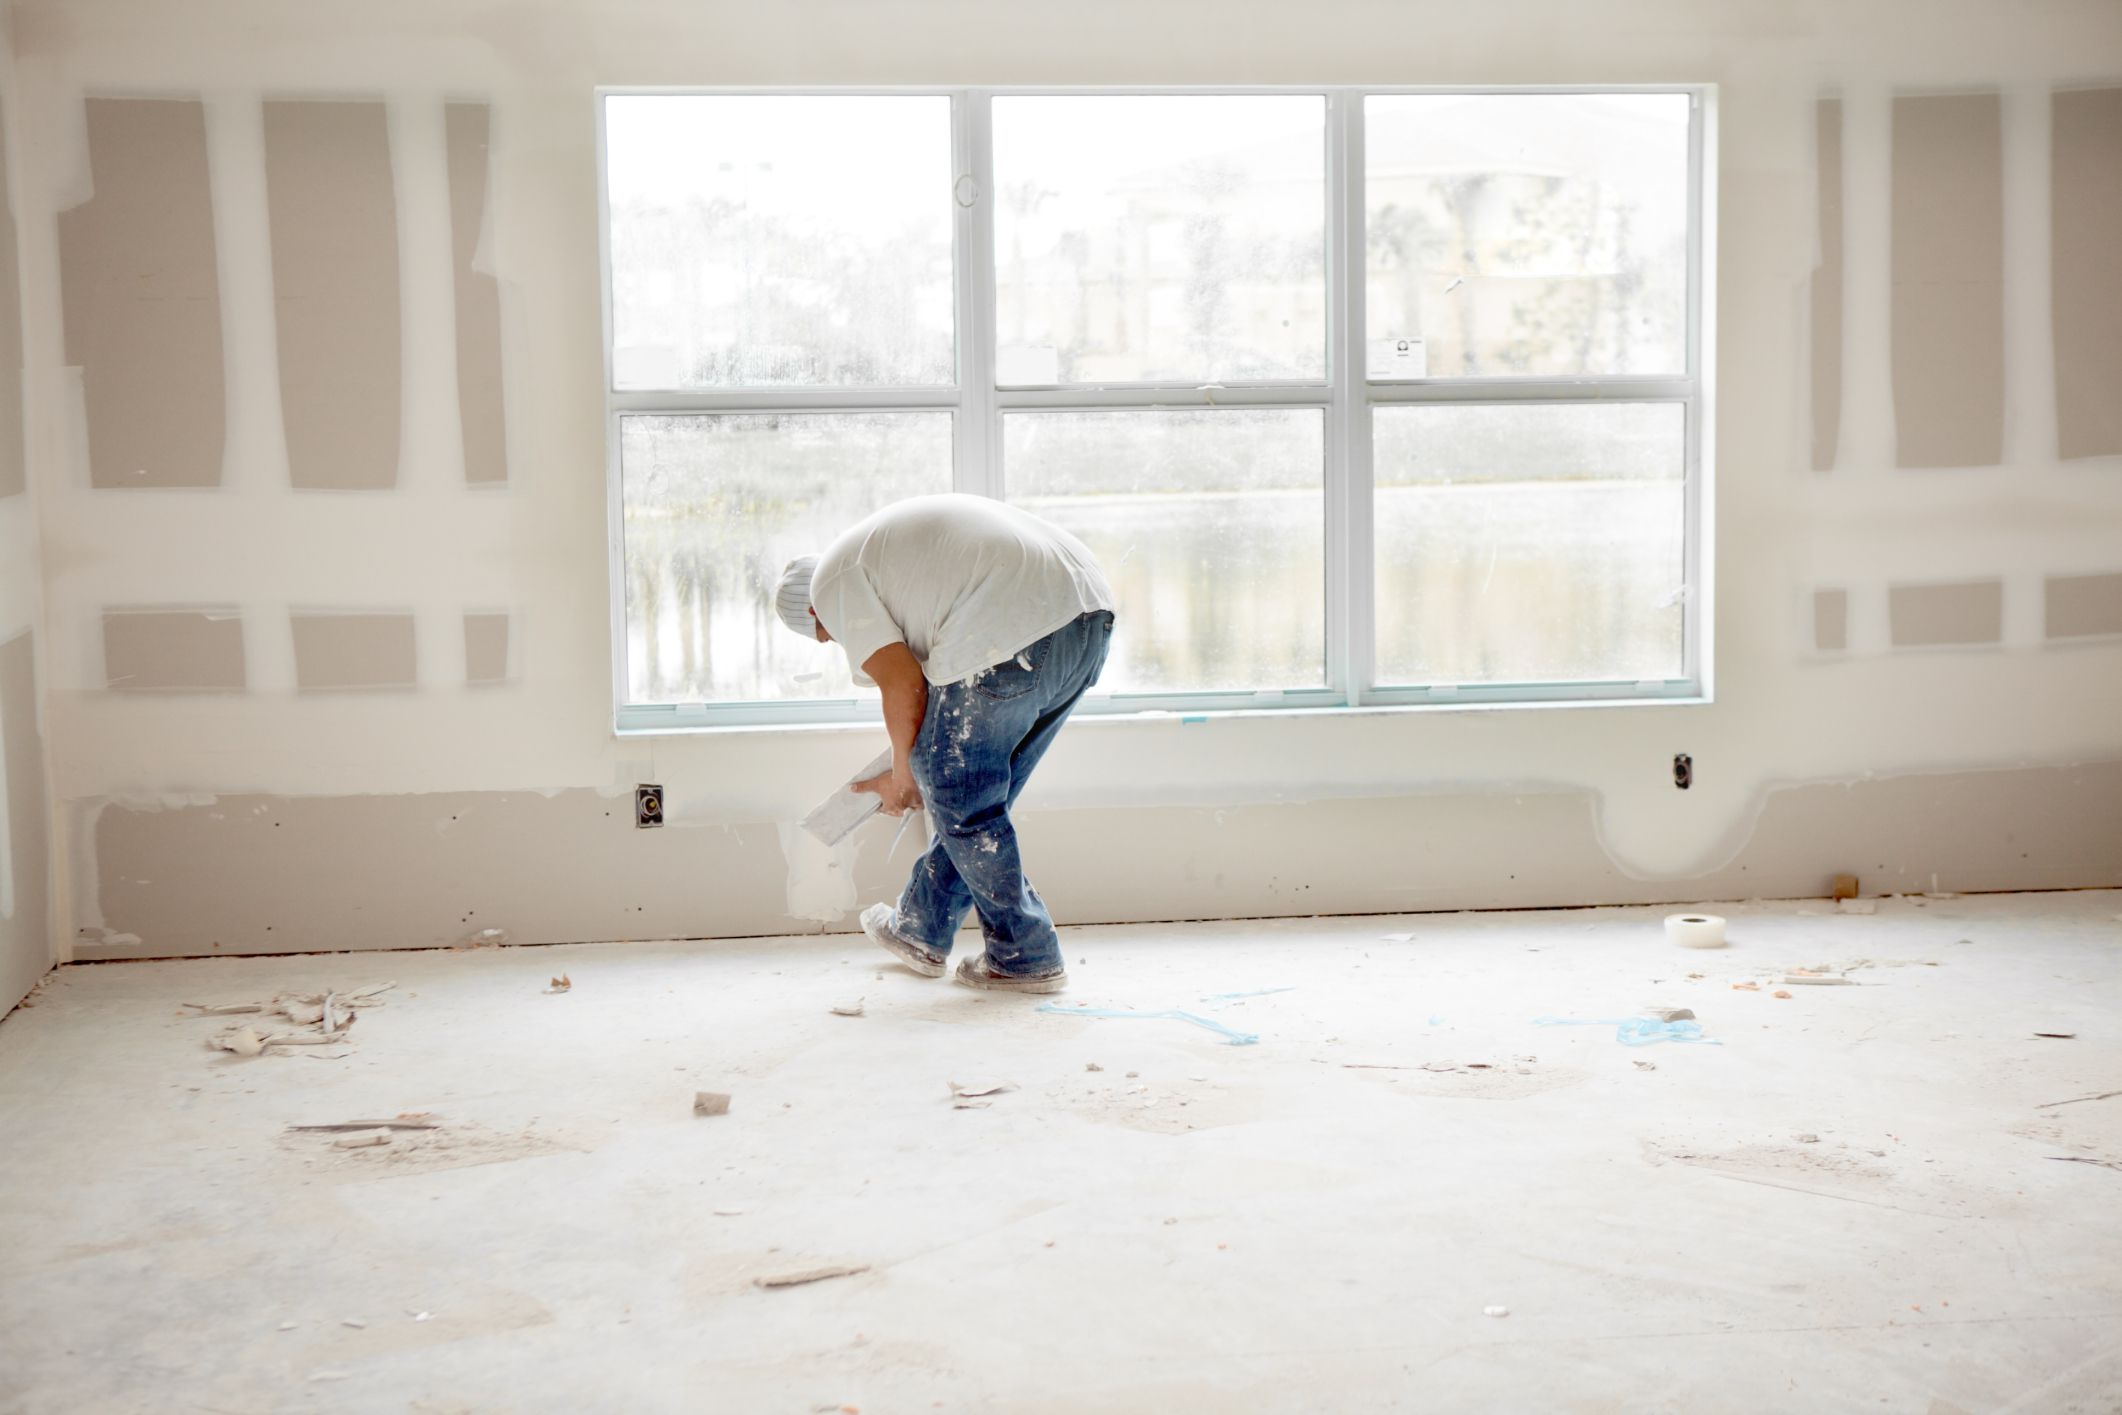 Soundproof Drywall Guide and QuietRock Review